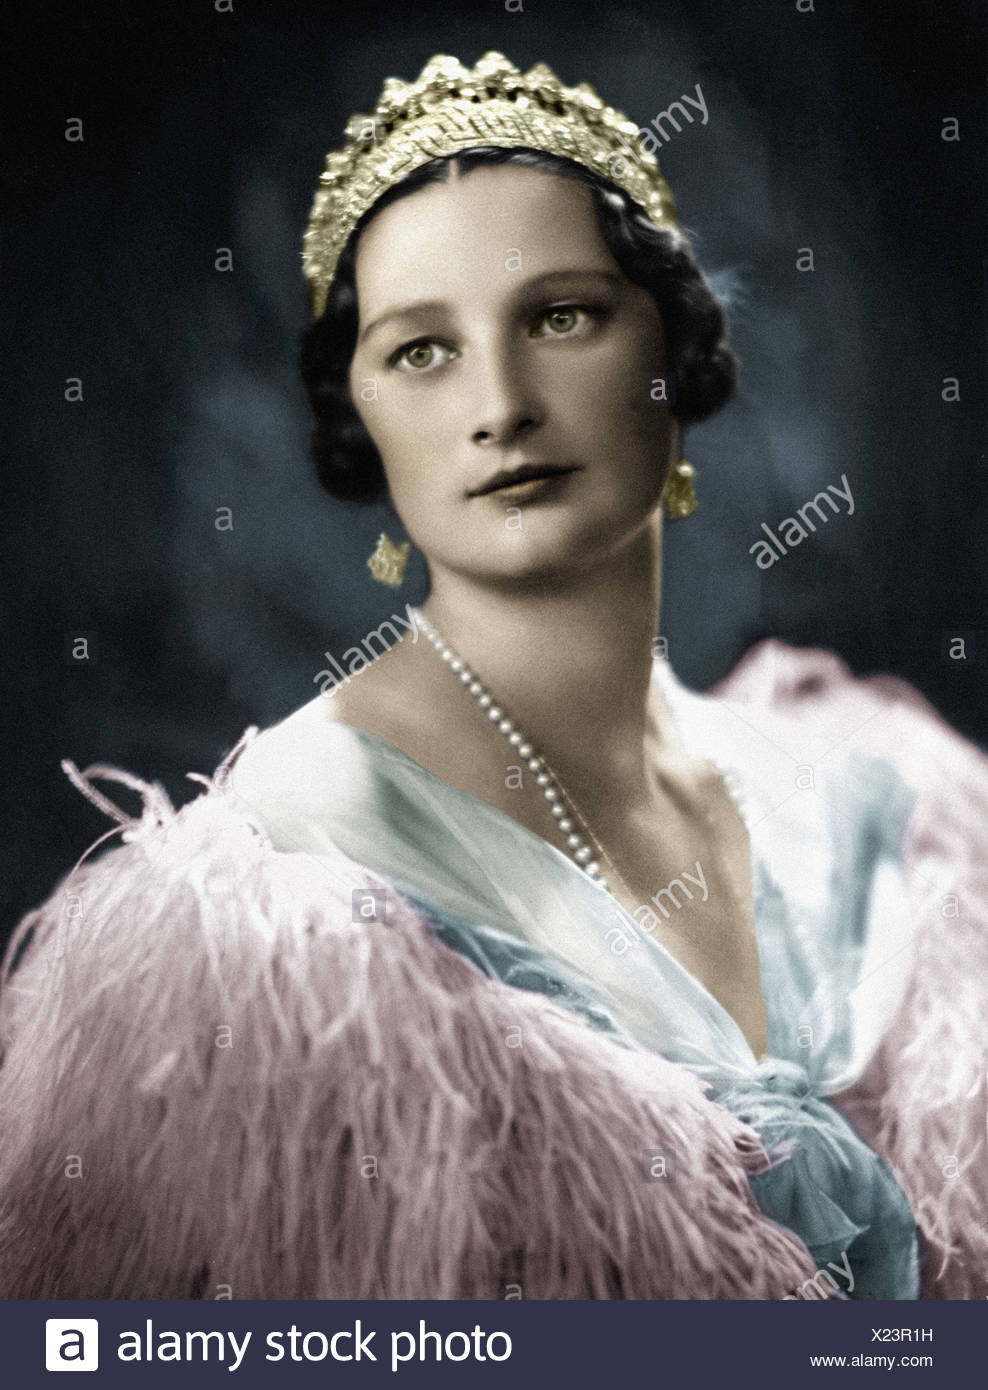 Astrid, 17.11.1905 - 29.8.1935, Queen Consort of Belgium  10.11.1926 - 29.8.1935, portrait, late 1920s, later coloured, , Additional-Rights-Clearances-NA - Stock Image